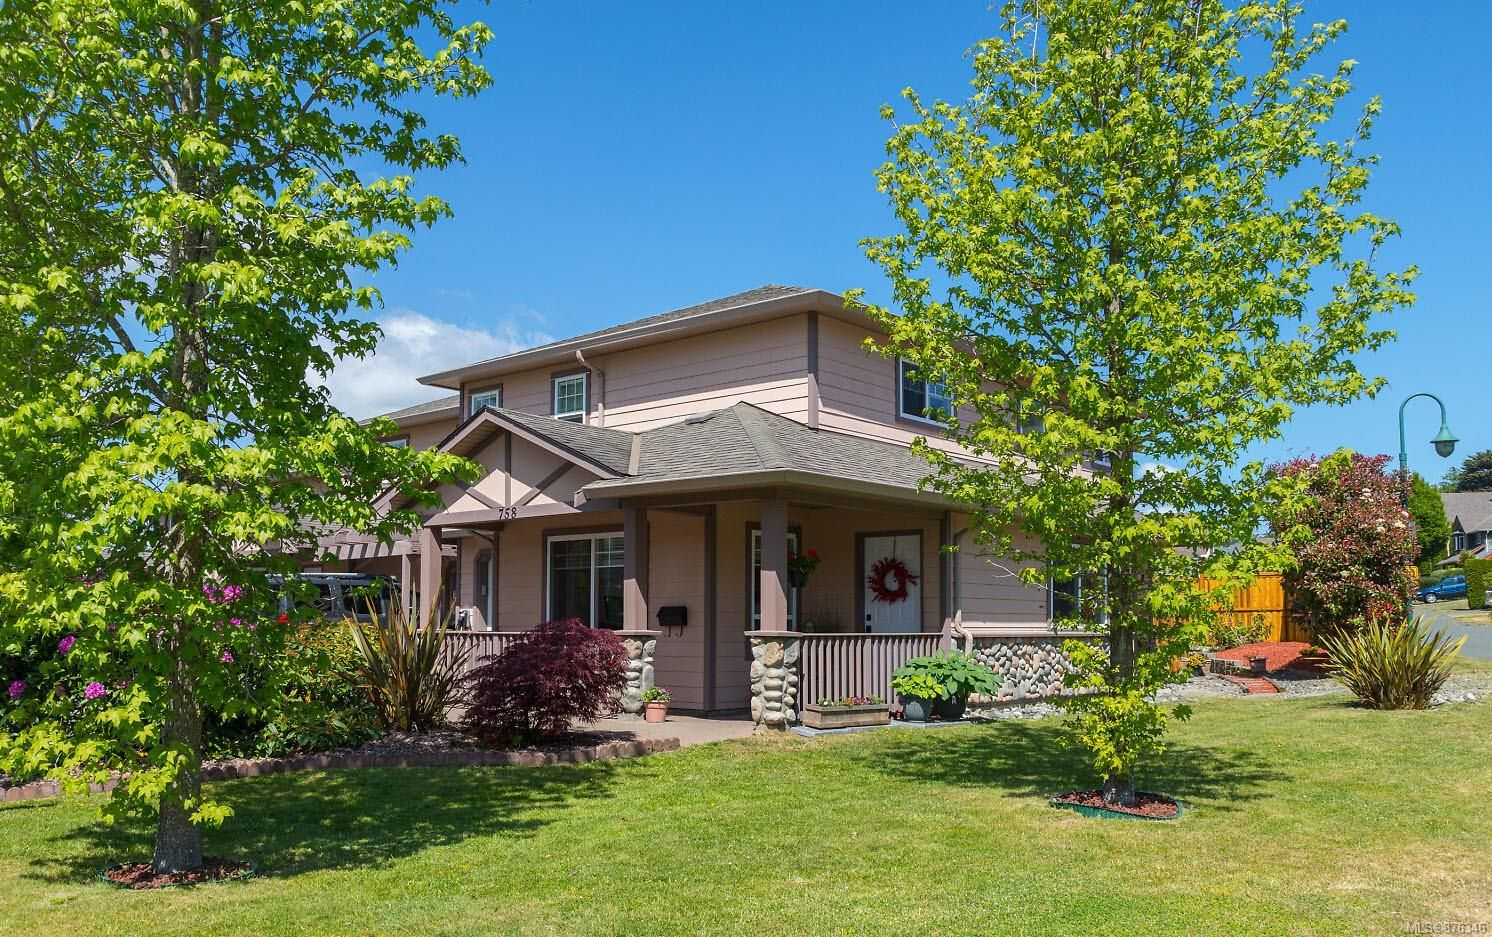 Main Photo: 758 Blackberry Rd in : SE High Quadra Row/Townhouse for sale (Saanich East)  : MLS®# 876346